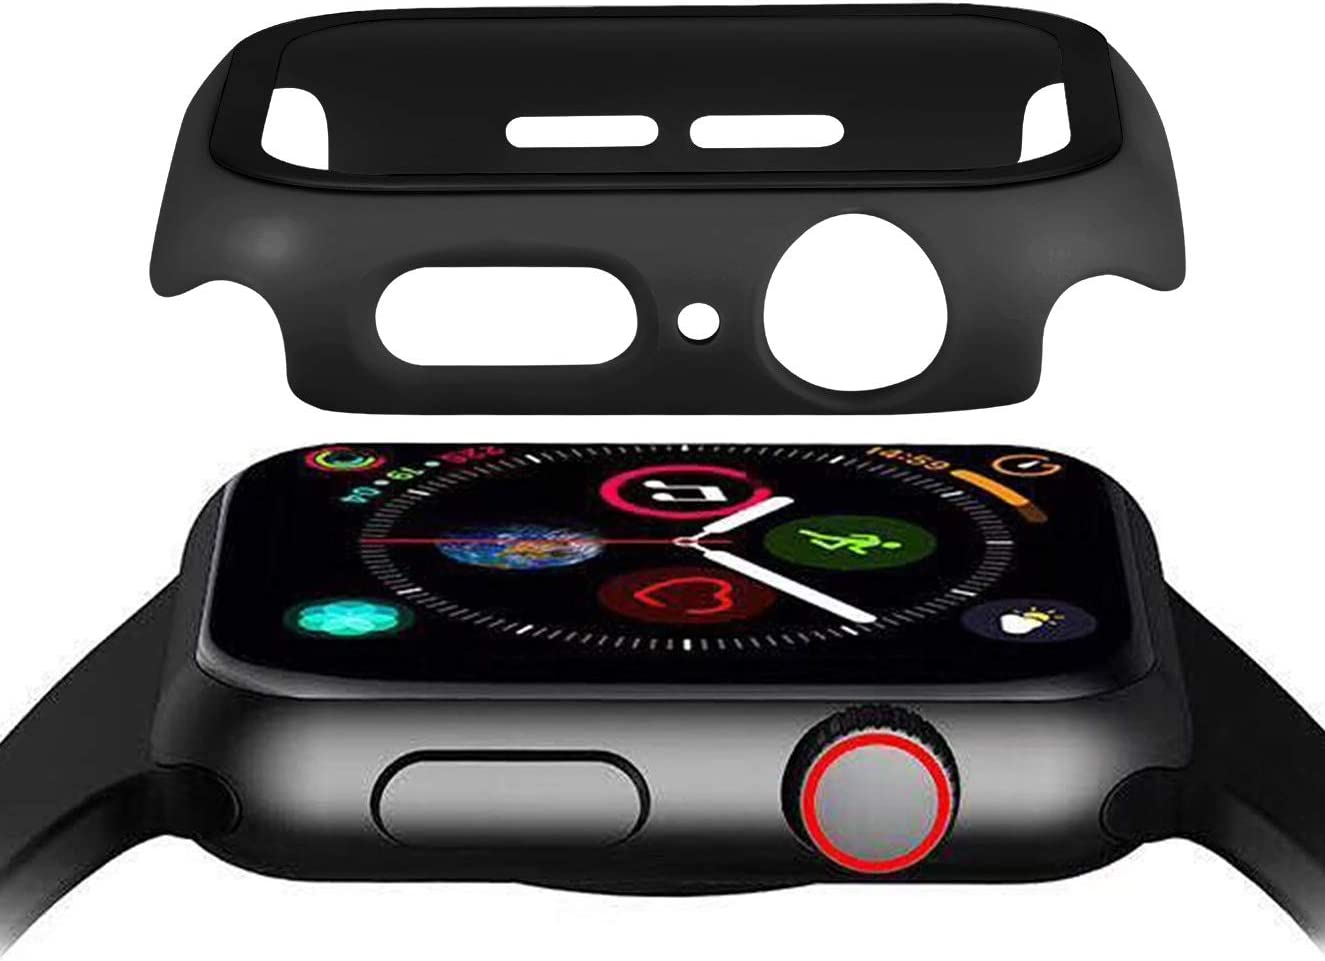 Hontao Hard PC Case with Tempered Glass Screen Protector, Full Coverage Ultra-Thin HD Clear Touch Sensitive iWatch Cover Compatible Apple Watch Series SE 6/5/4 (Black, 44mm)